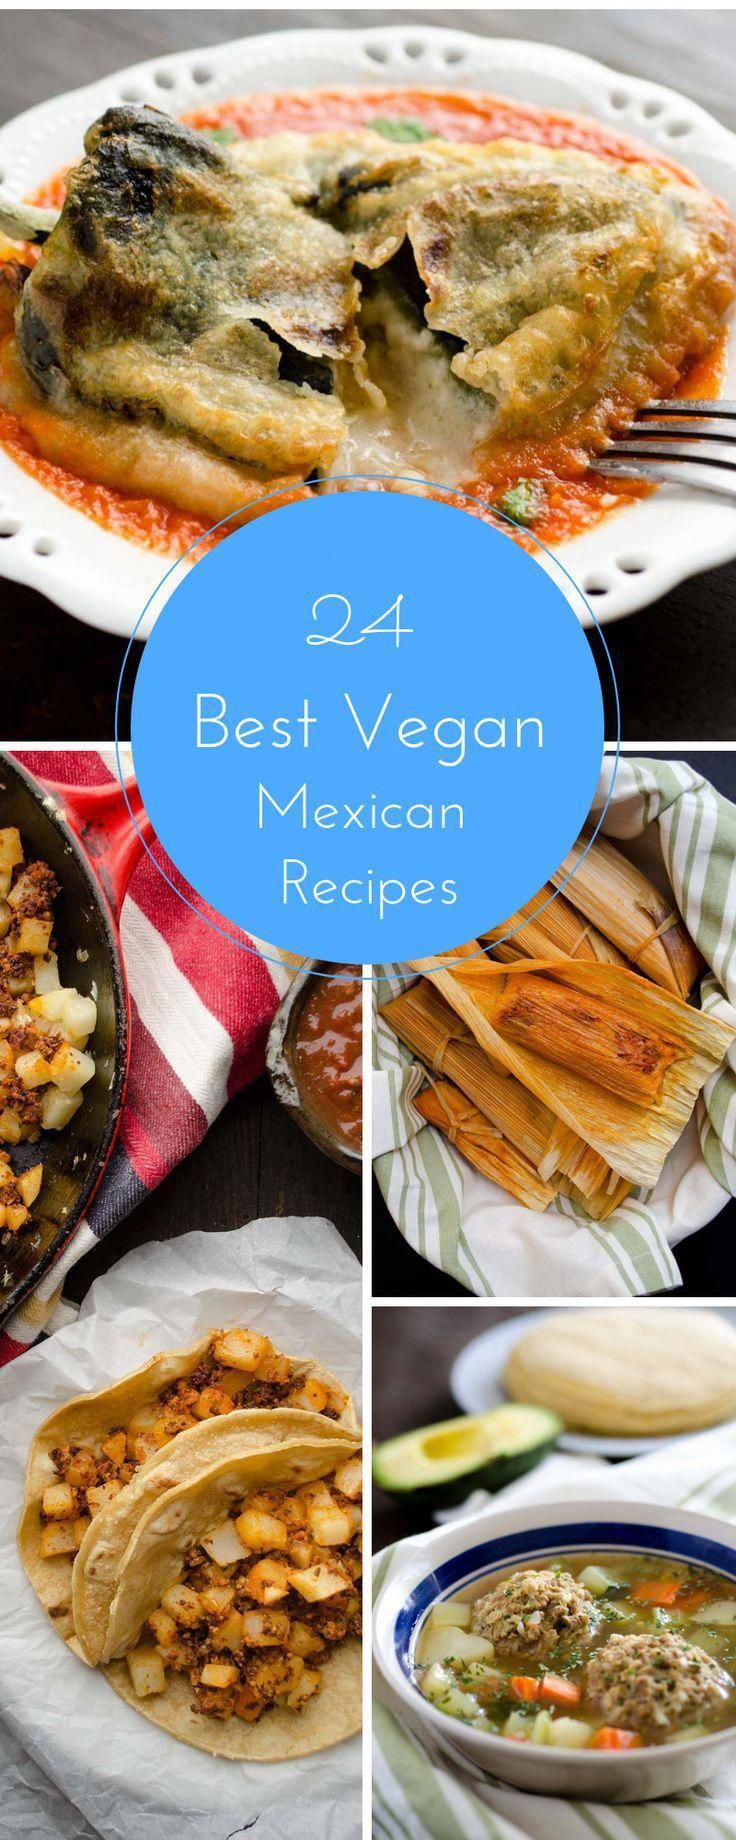 The Best Vegan Mexican Recipes, with healthy options that include everything from tacos, burritos, tamales, and chiles rellenos. All vegan and cruelty free!!